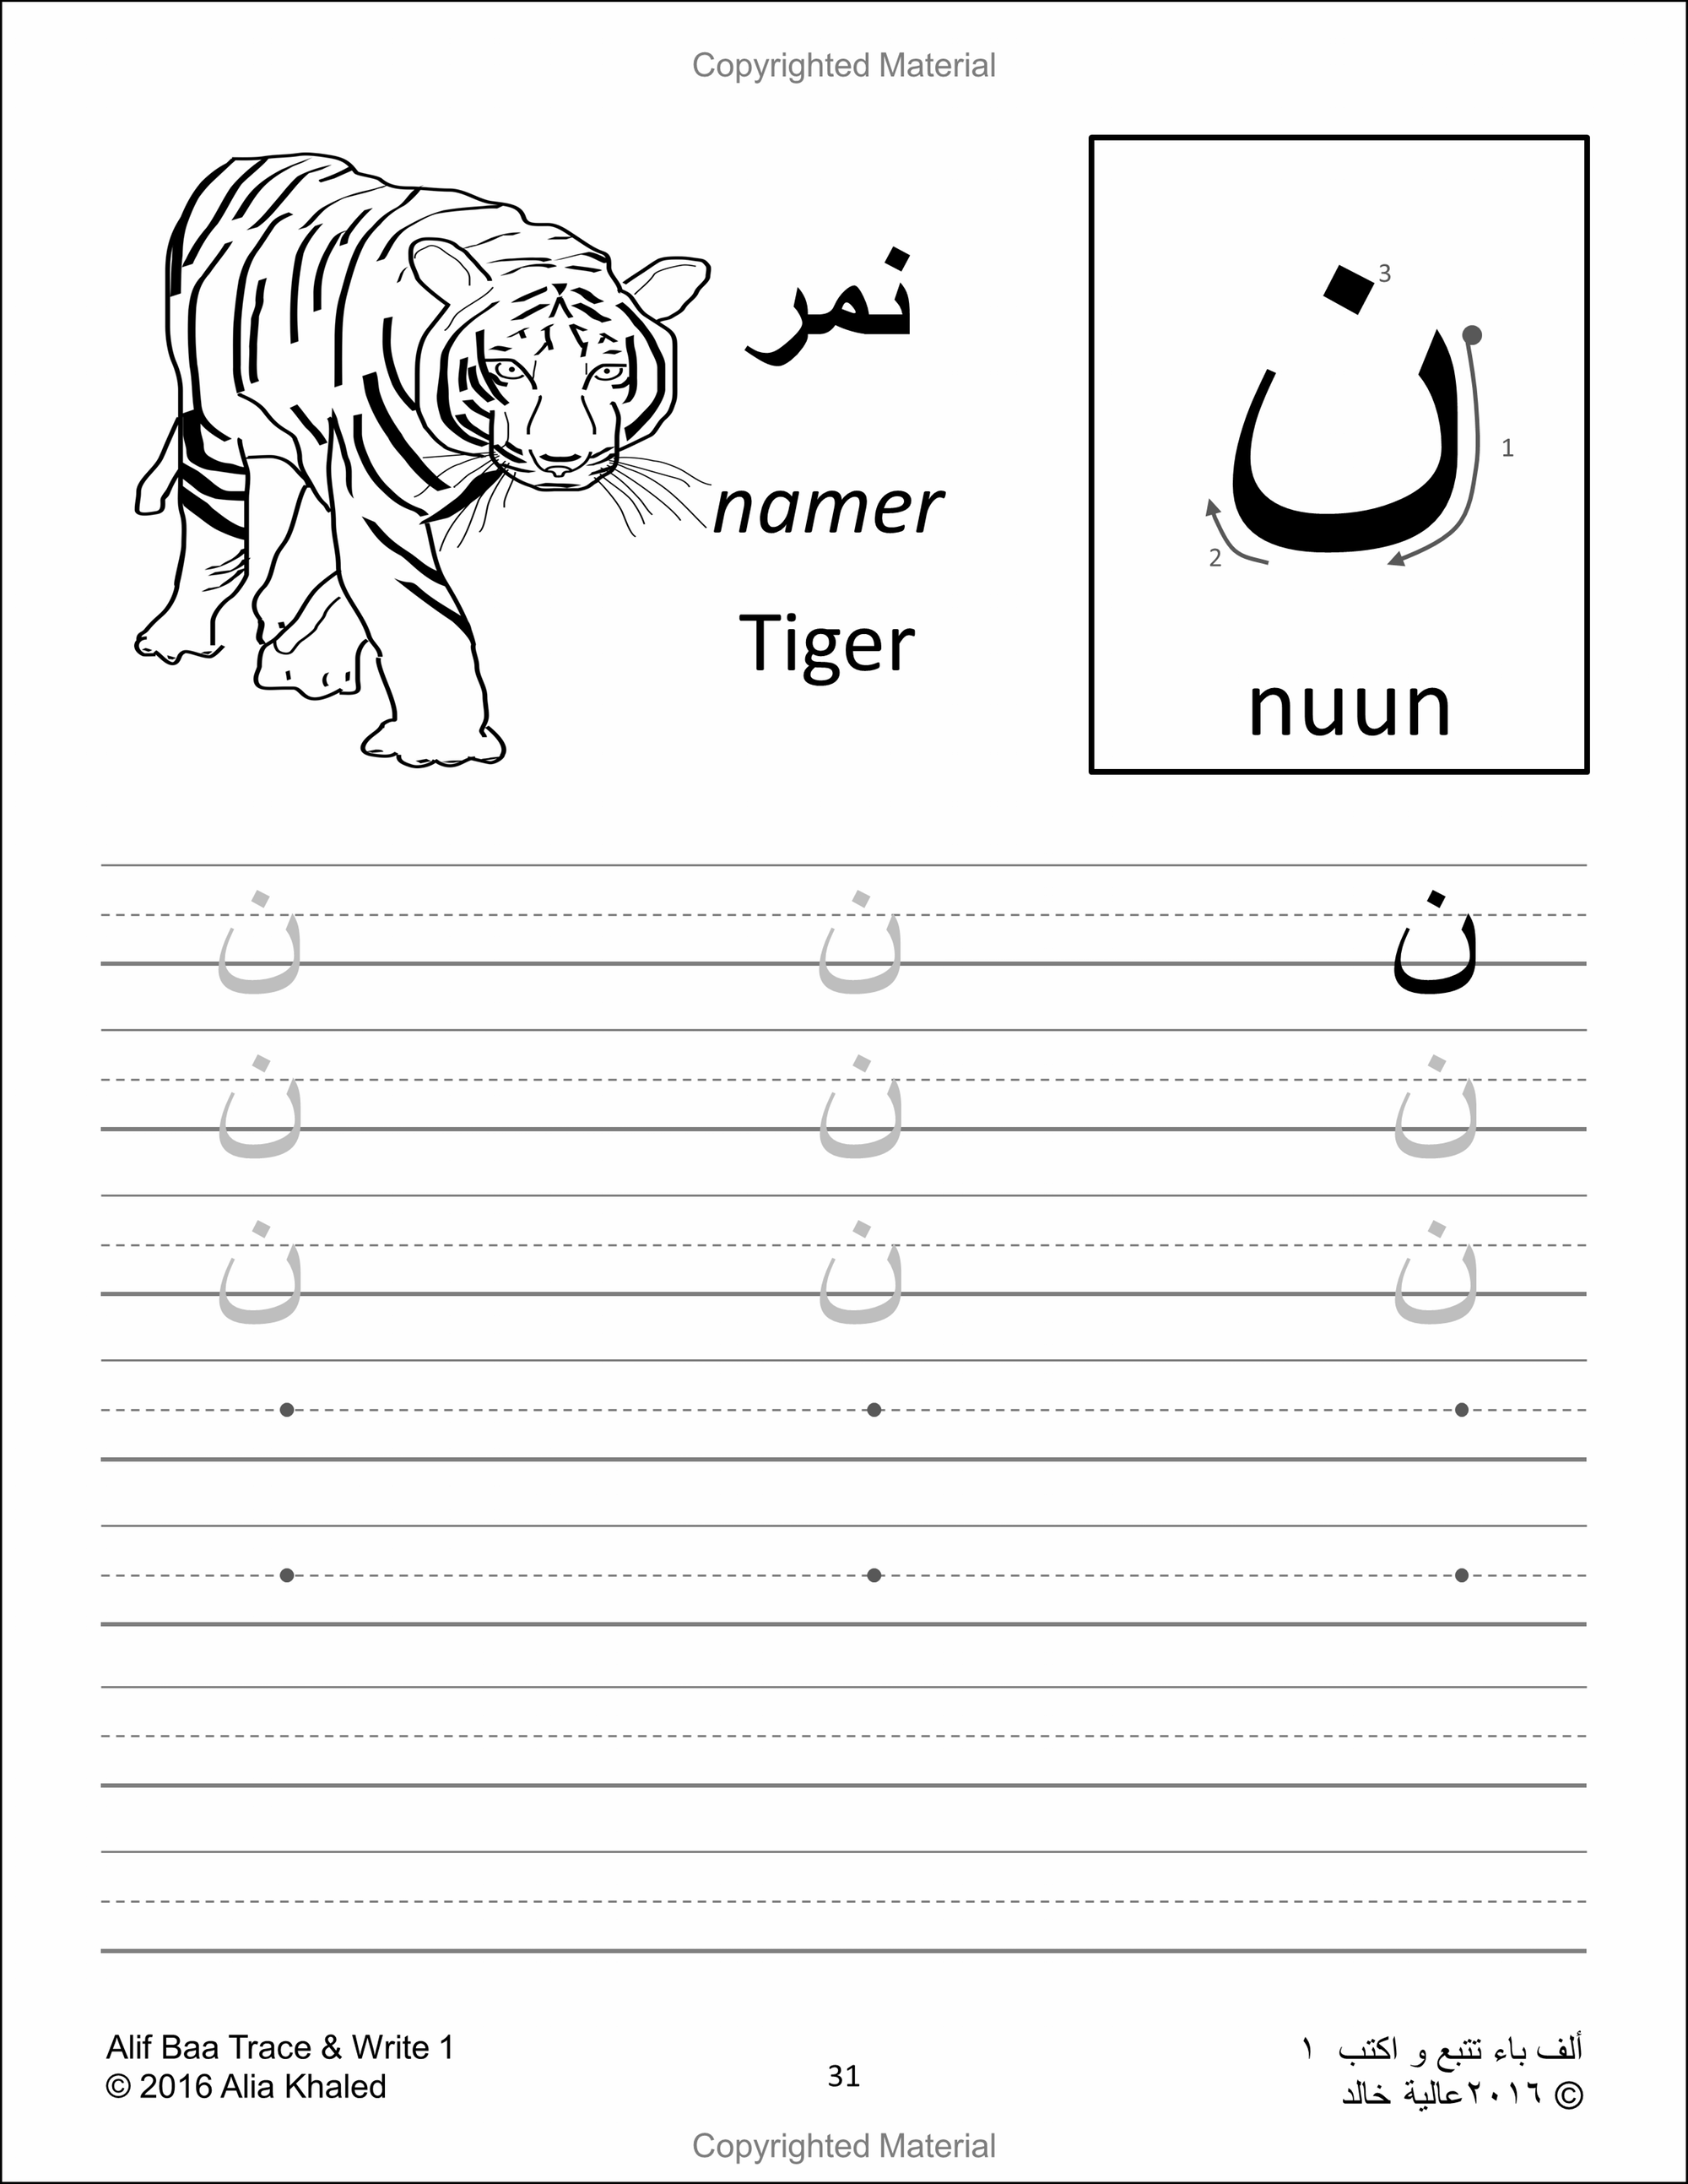 image of alif baa trace write 1 learn how to write the arabic alphabet education arabic. Black Bedroom Furniture Sets. Home Design Ideas